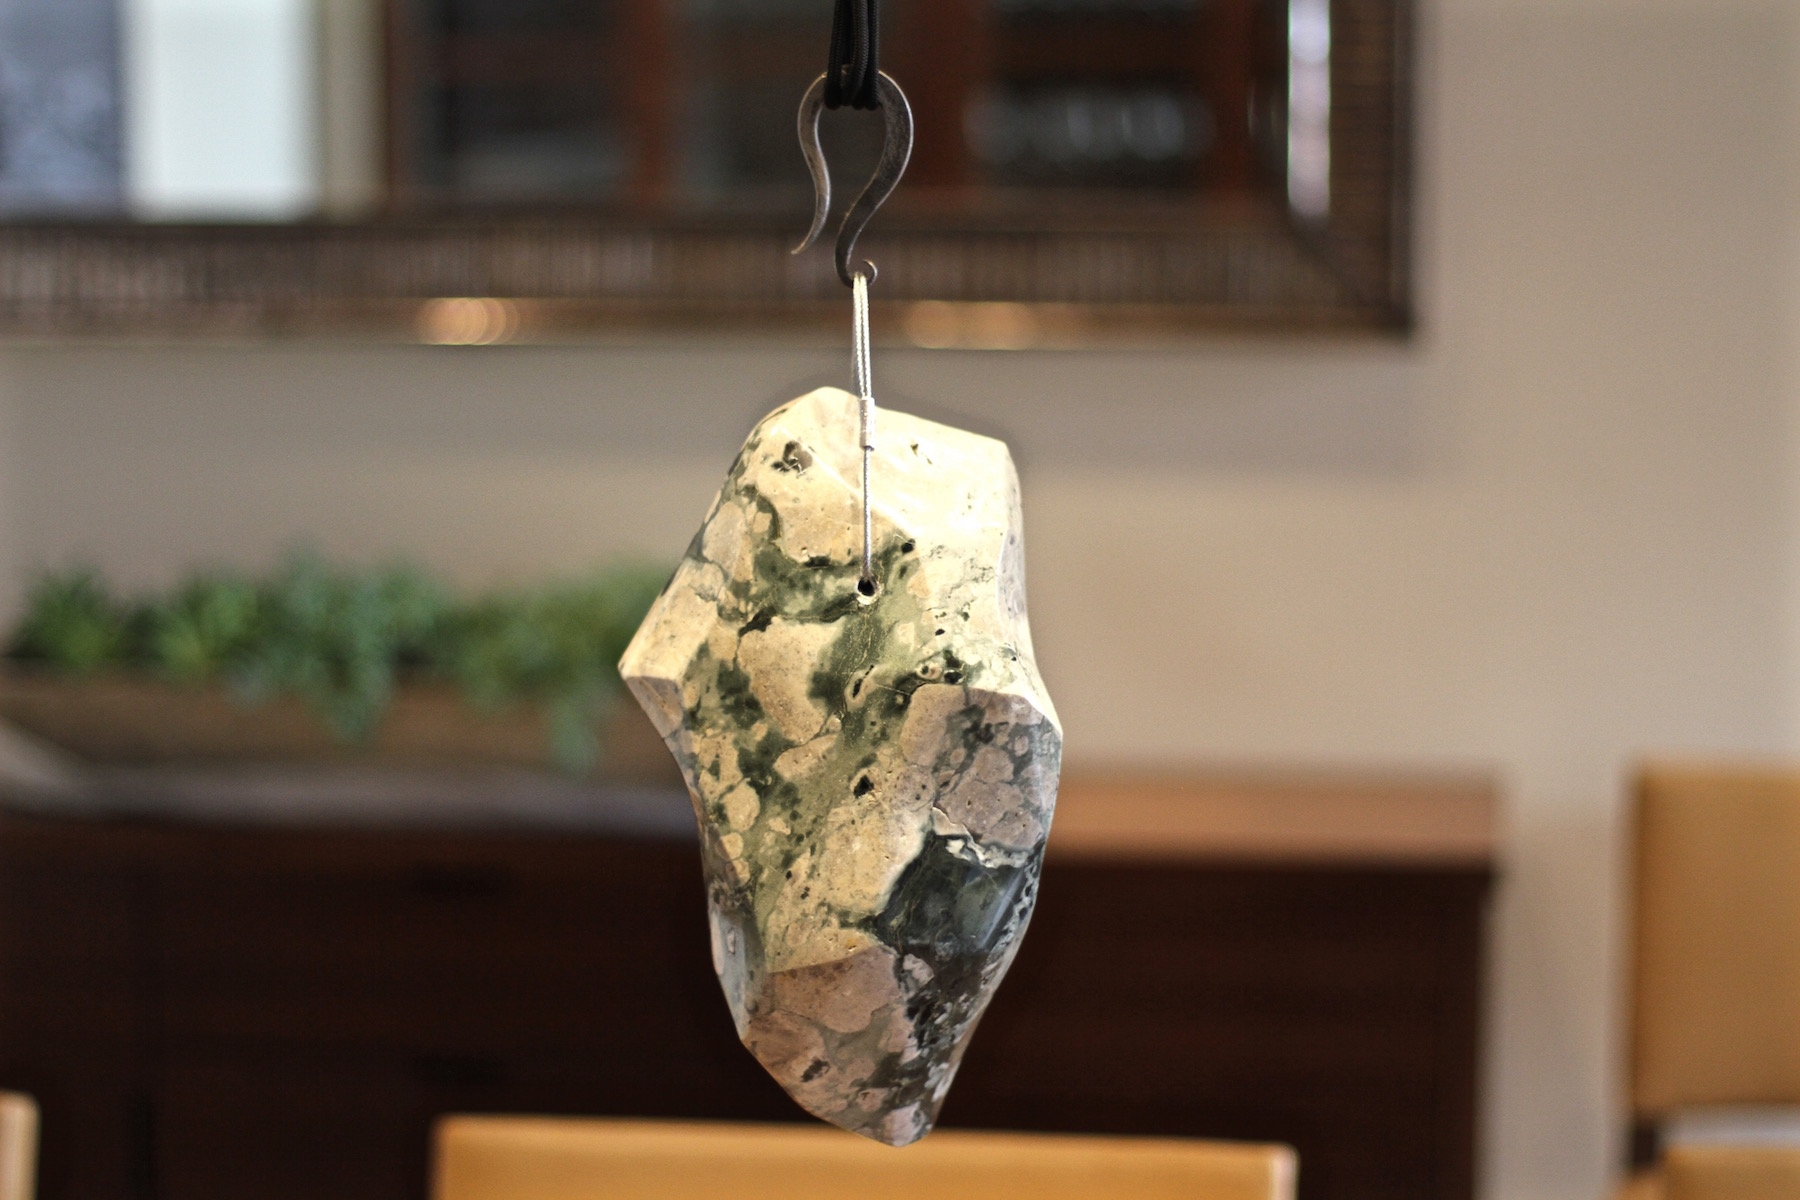 Polished stone counterweight for adjustable chandelier couterweight for carmel chandelier aloadofball Images